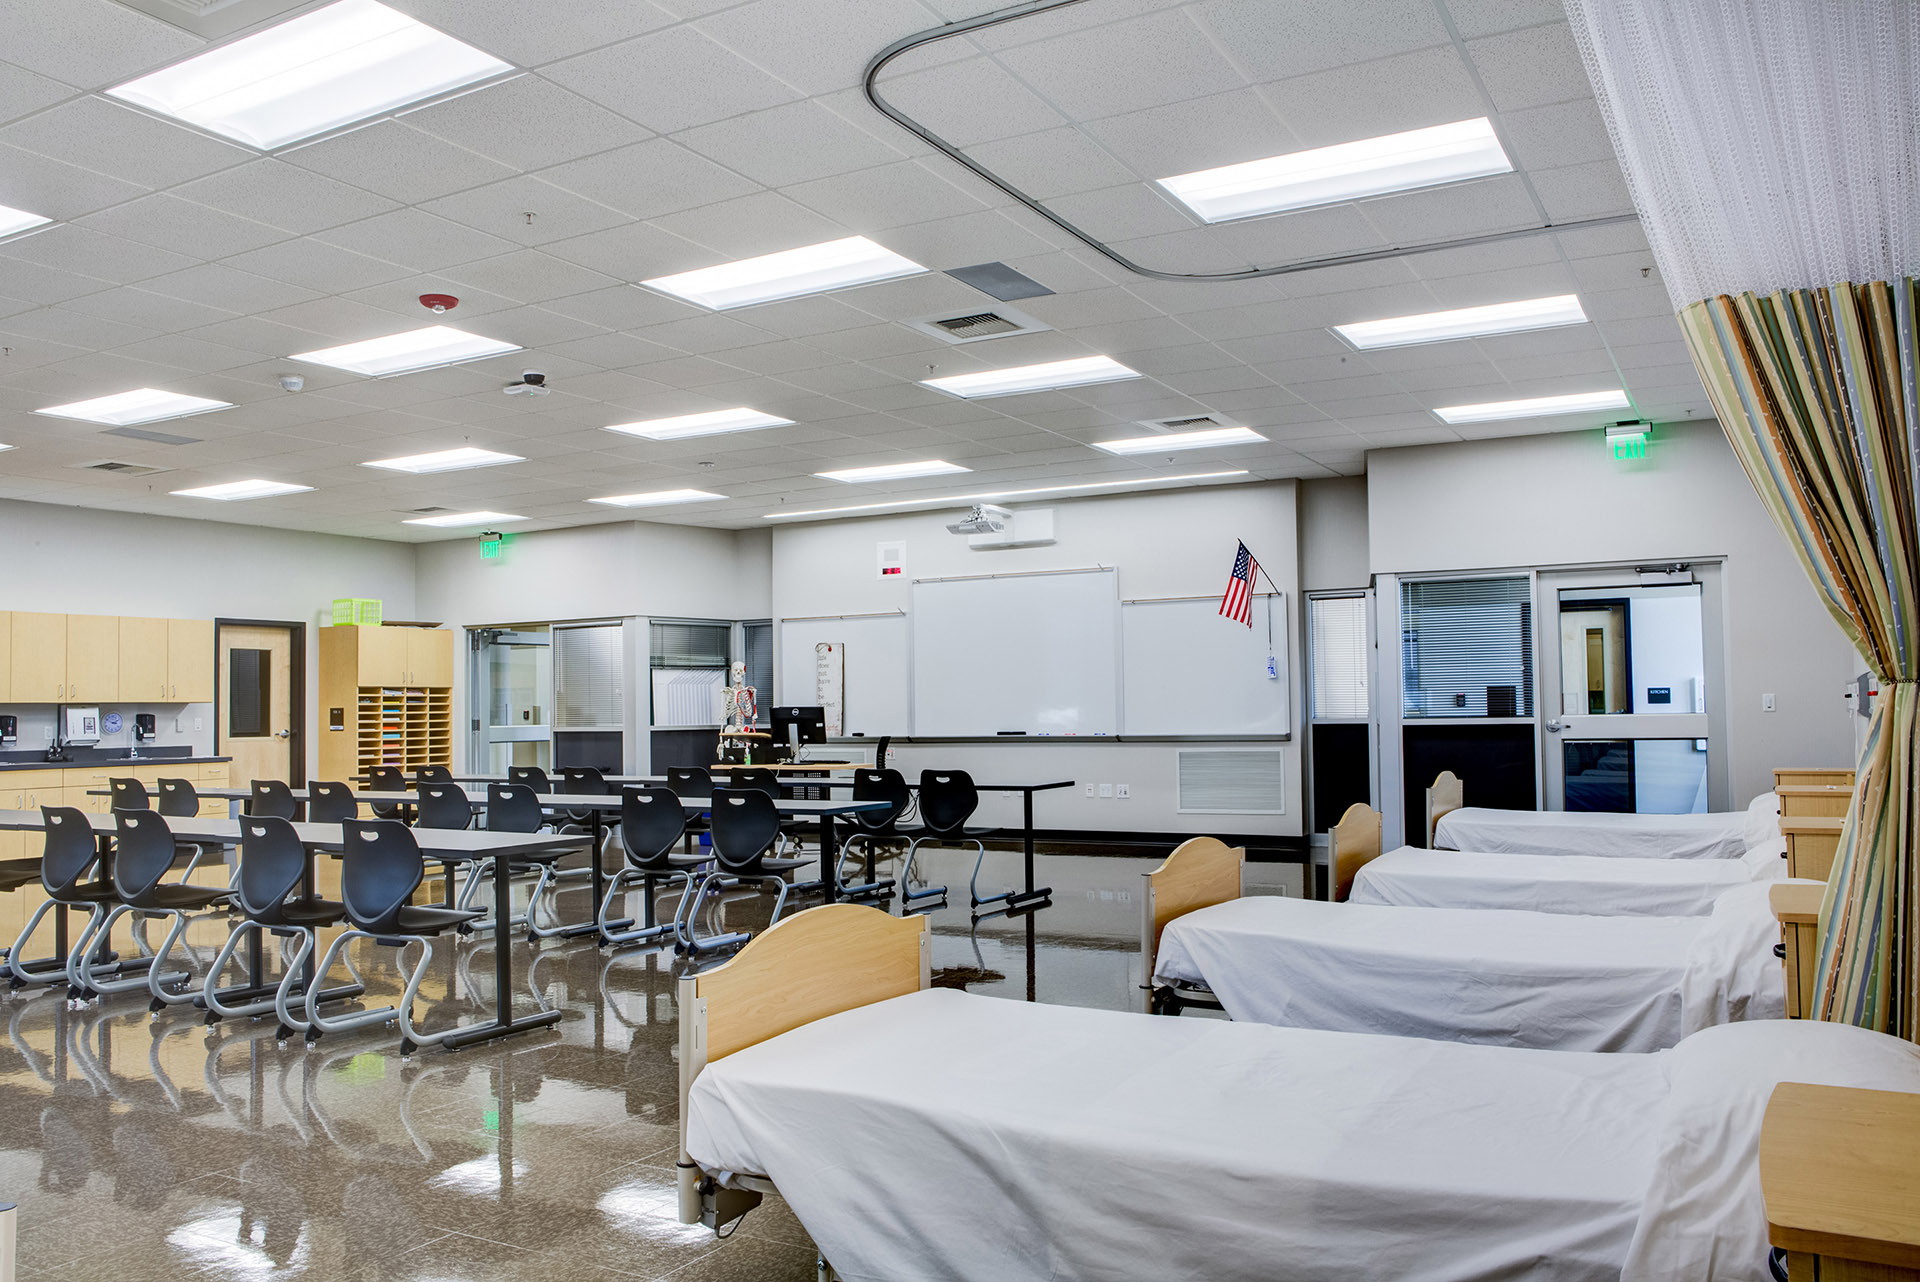 Southeast Area Technical Skills Center Health Science Classroom